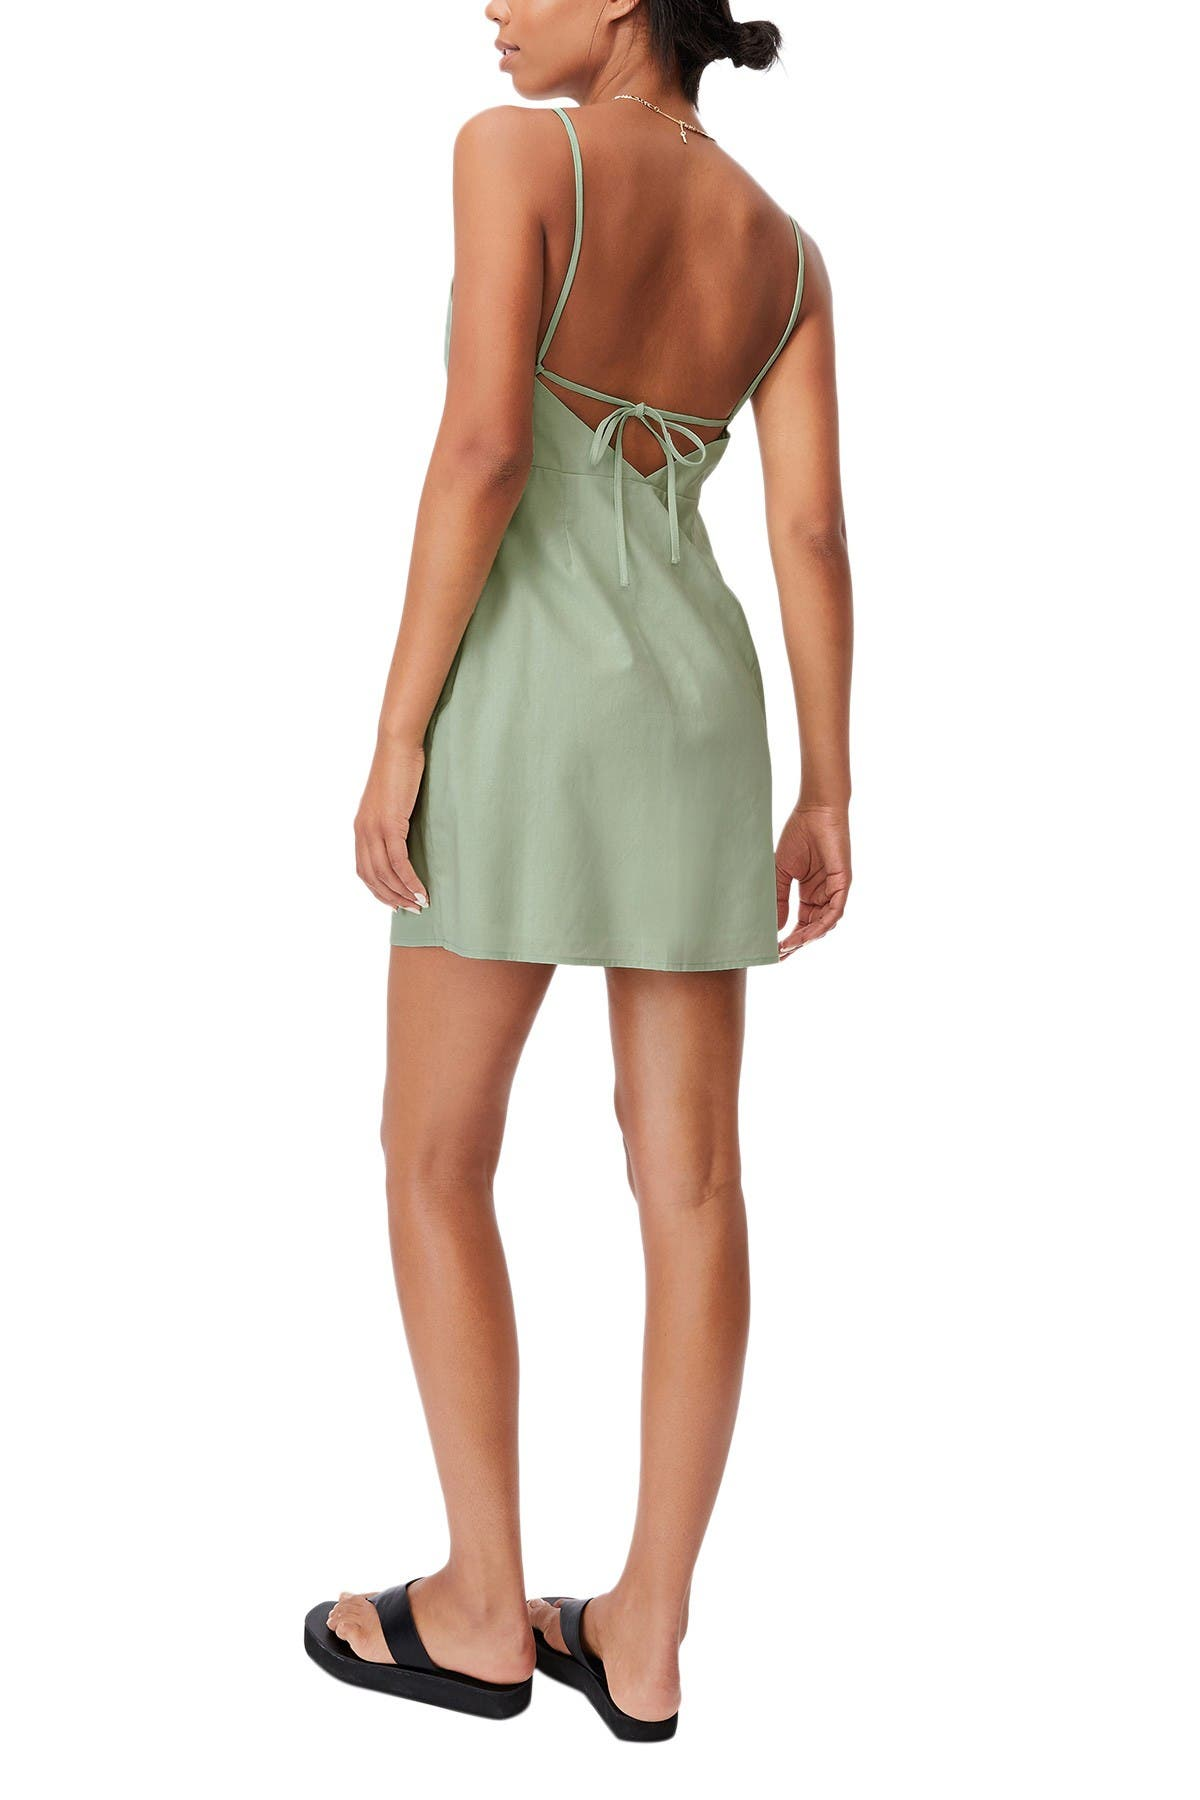 Image of Cotton On Woven Ally Strappy A-Line Tennis Mini Dress